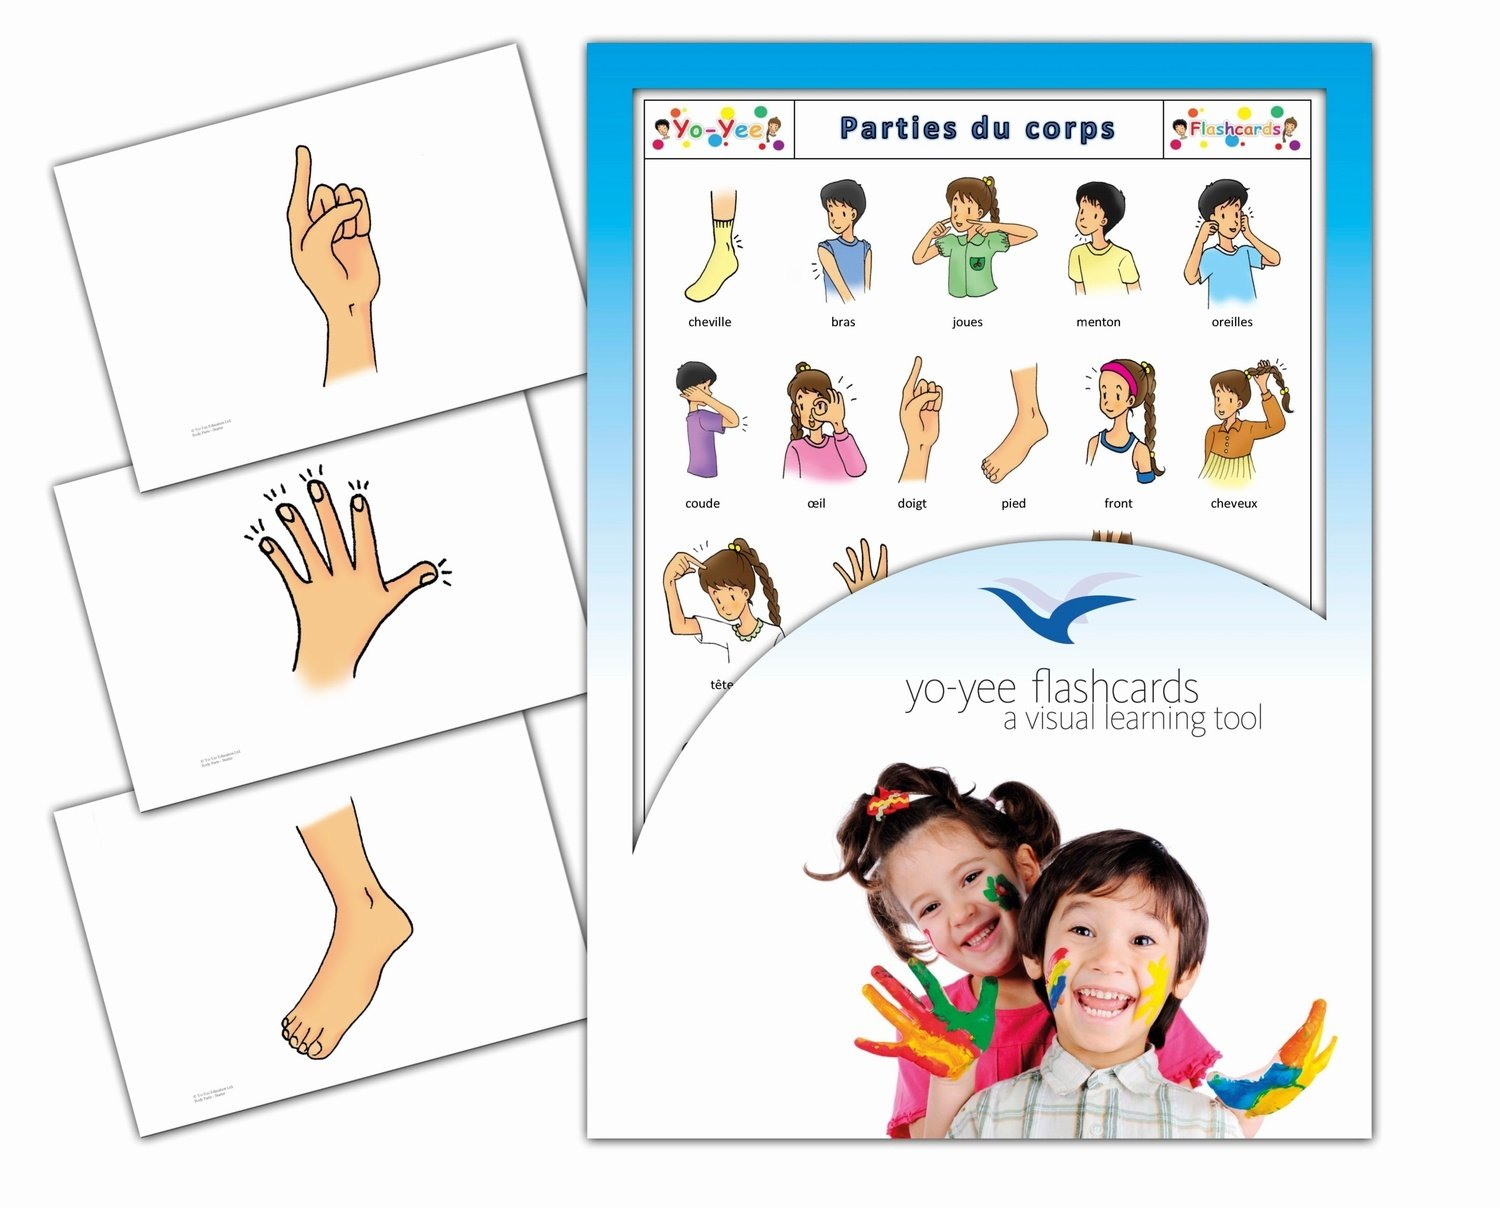 Parties du corps - Fiches de vocabulaire - Body Parts Flashcards in French Yo-Yee Flashcards